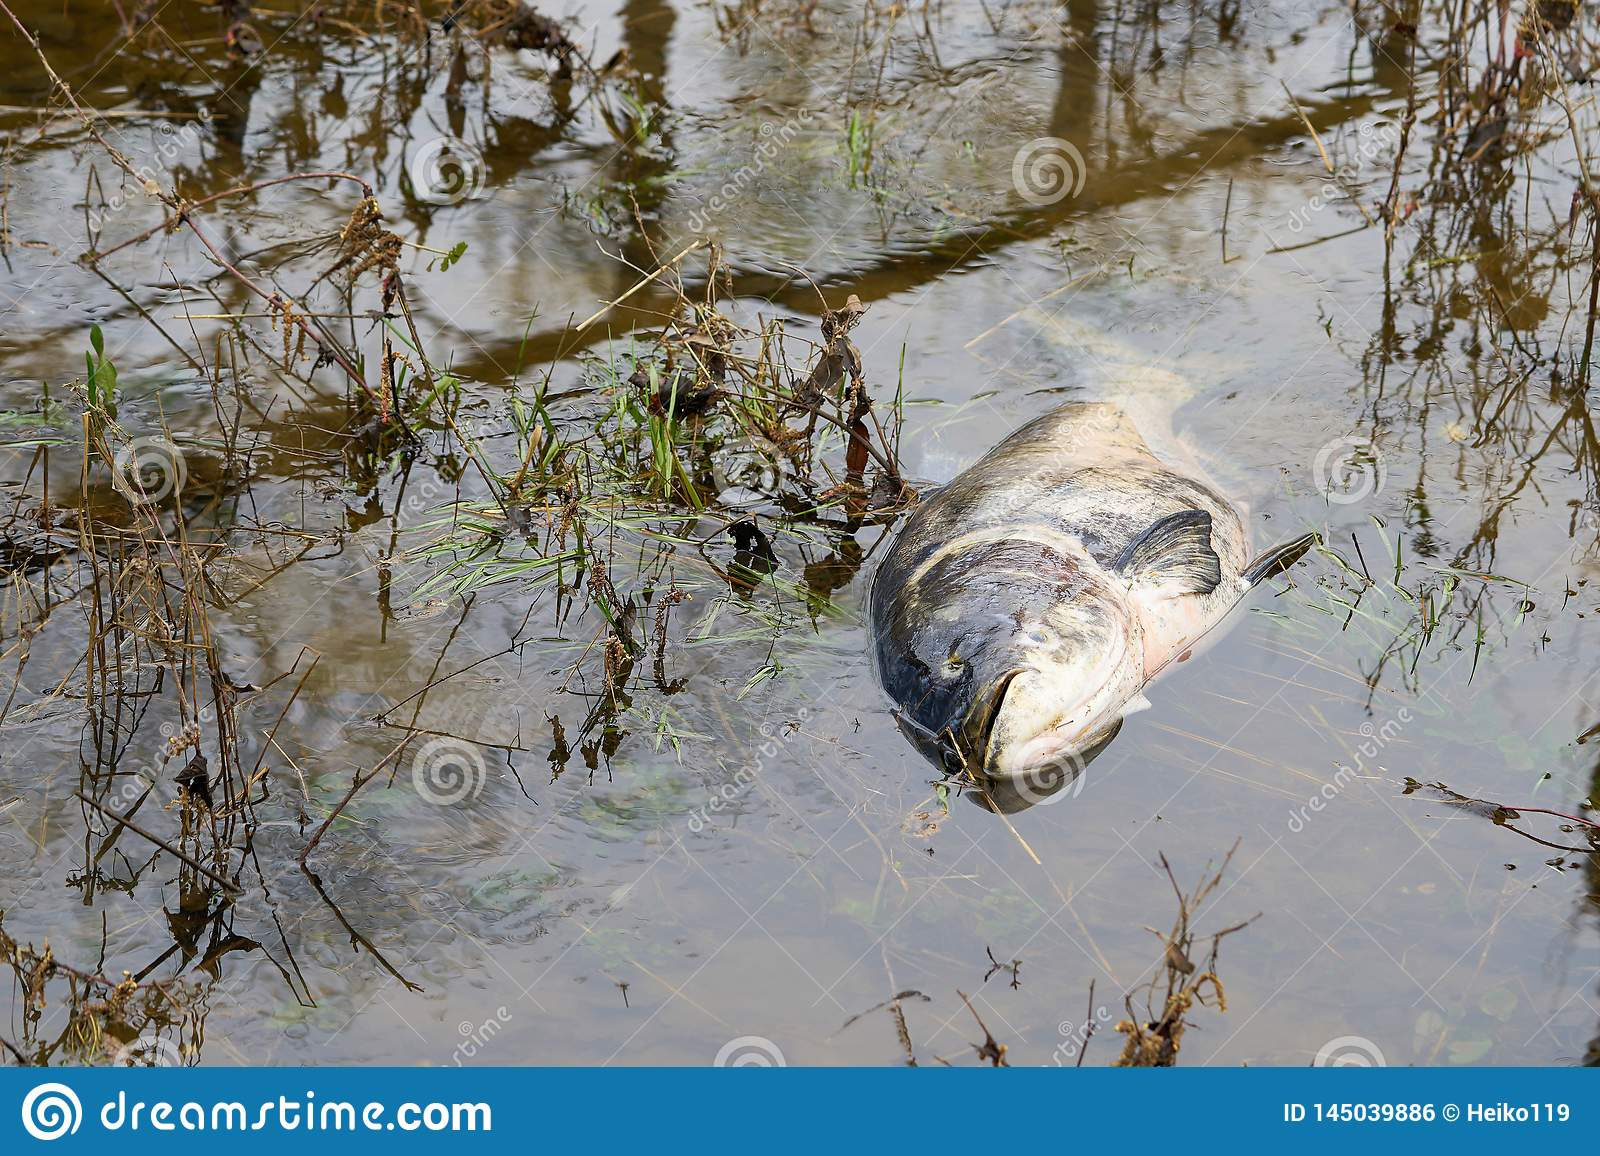 Dead bighead carp in a tributary of the Elbe near Magdeburg